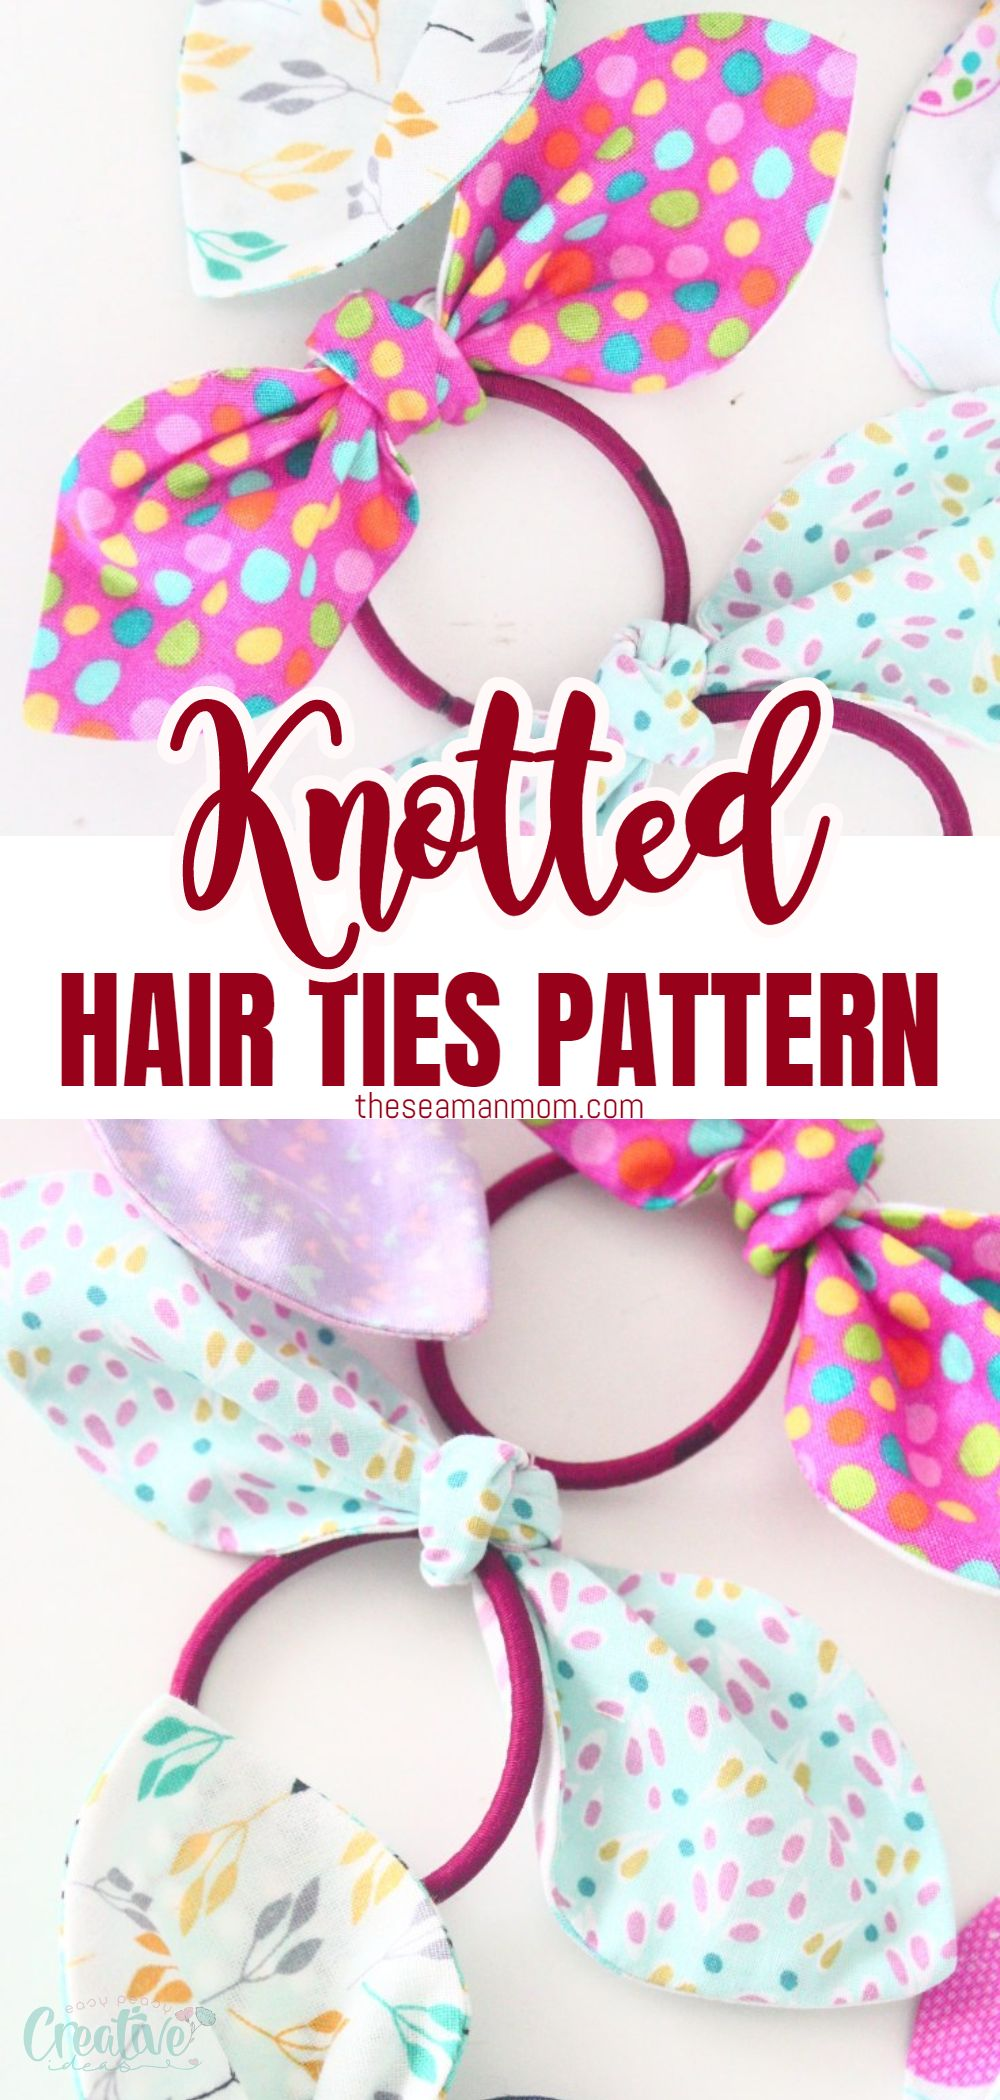 Girls love cute and colored hair accessories, so these knotted hair ties will be great for your little one! They look just like little bows and come out in just a few minutes. In about an hour, you will get a complete set of colored hair ties to accessorize your daughter's wardrobe. via @petroneagu